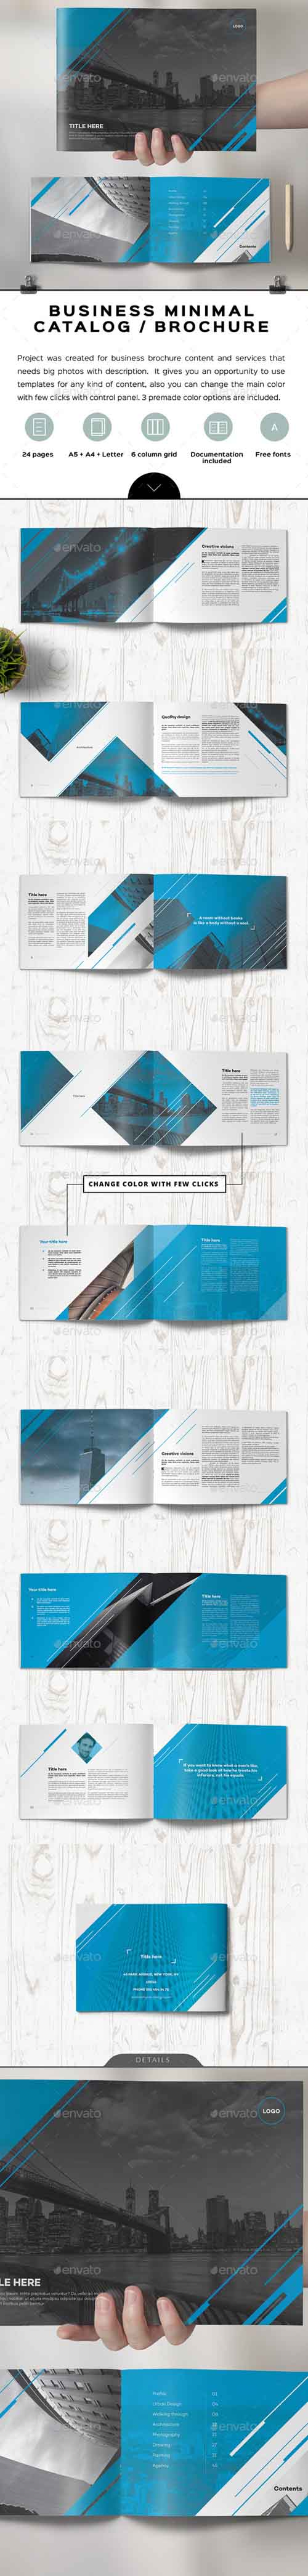 Unicado Business Minimal Brochure 15189567